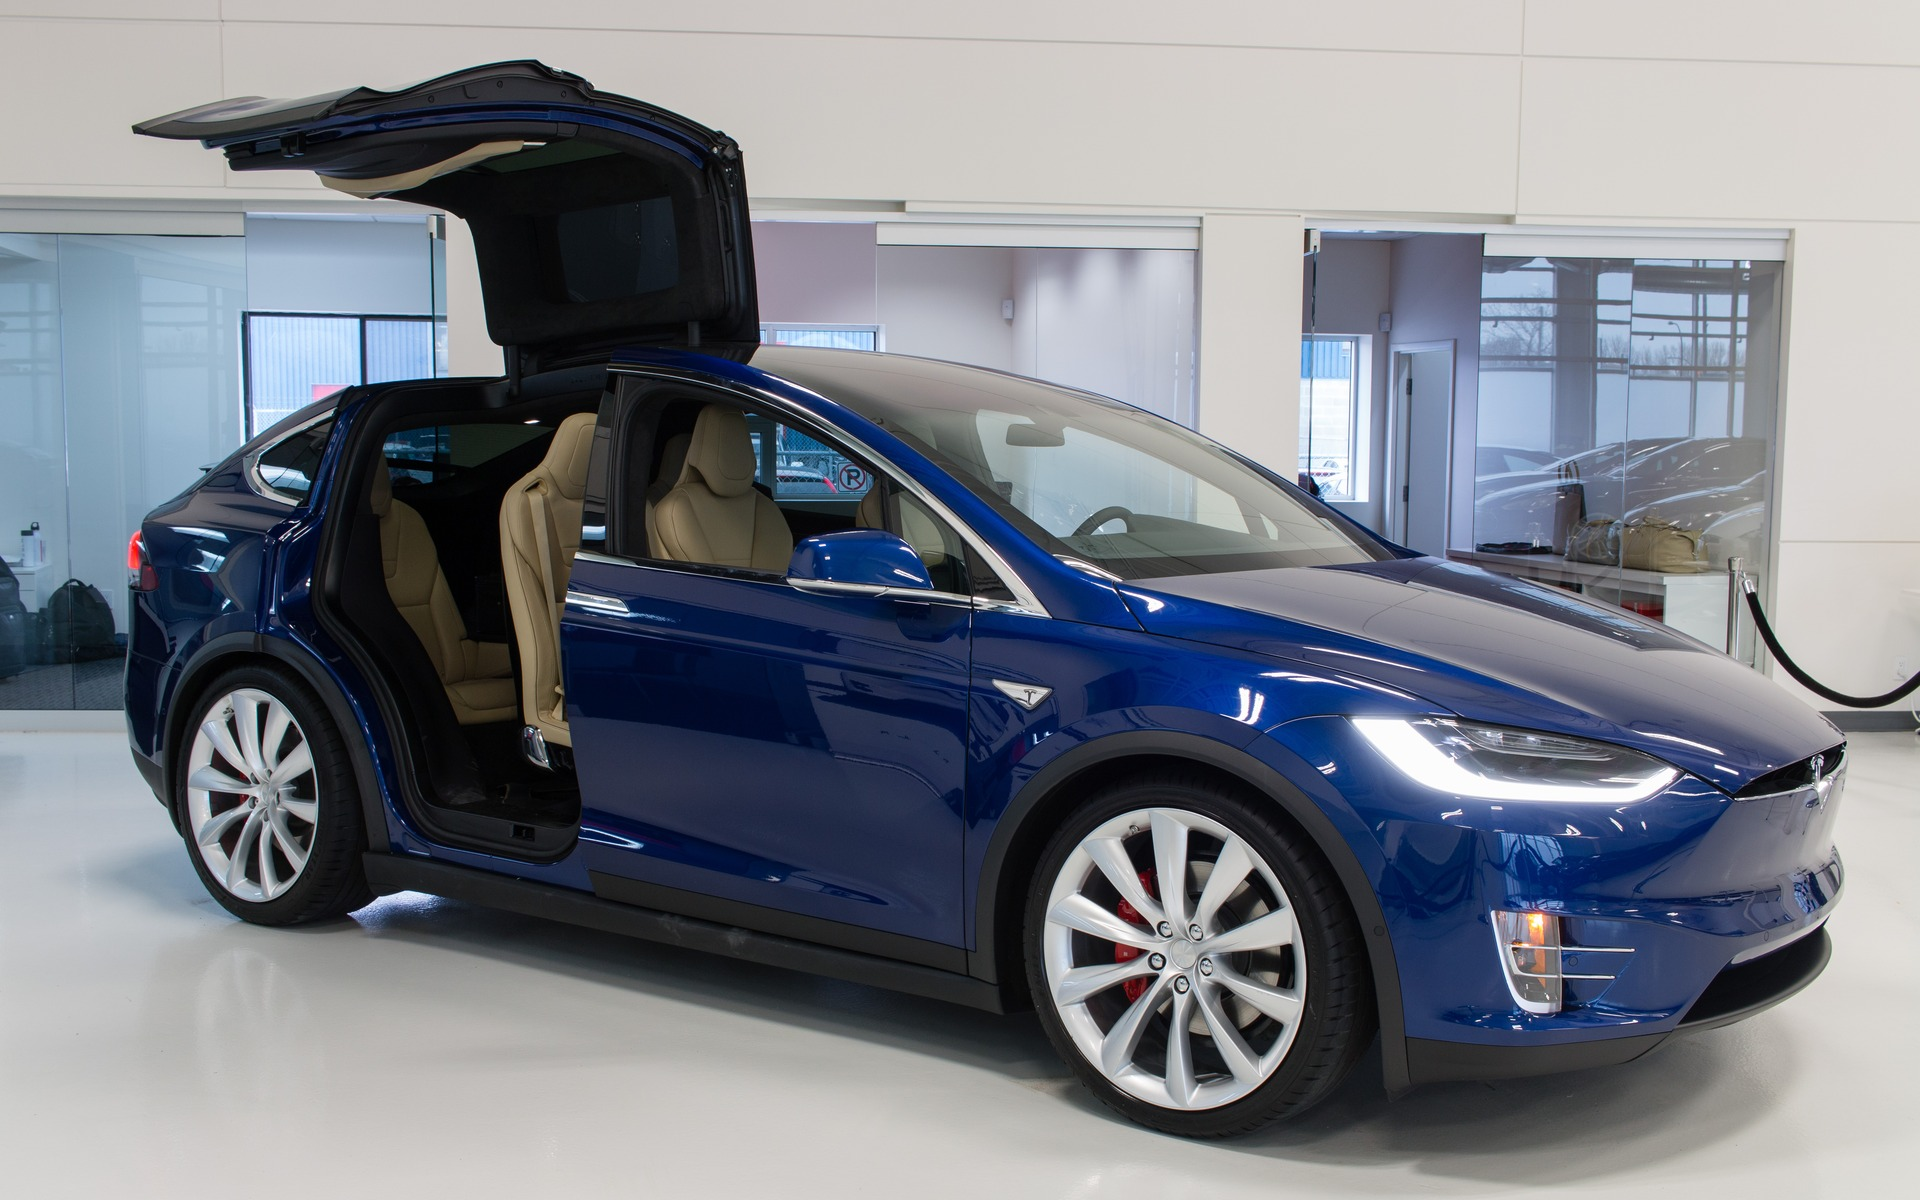 Fastest Car In The World >> Tesla Model S P100D is Fastest Production Car in the World, Says Tesla - 9/15